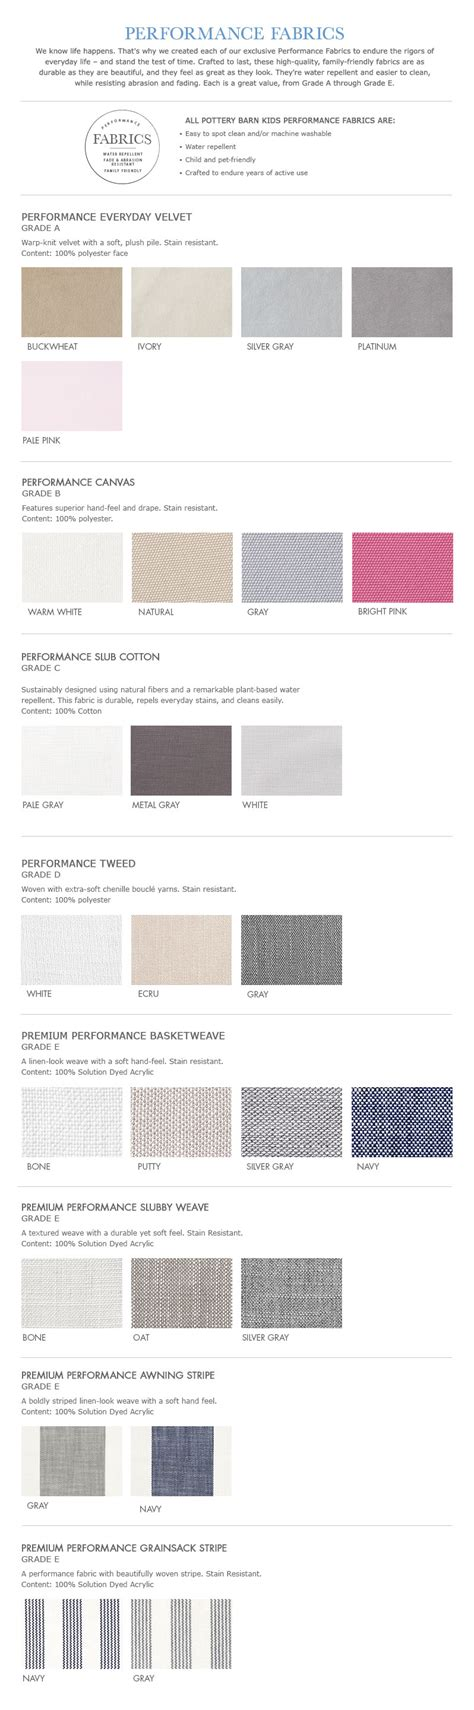 Pottery Barn Track My Order Performance Fabric Guide Pottery Barn Kids